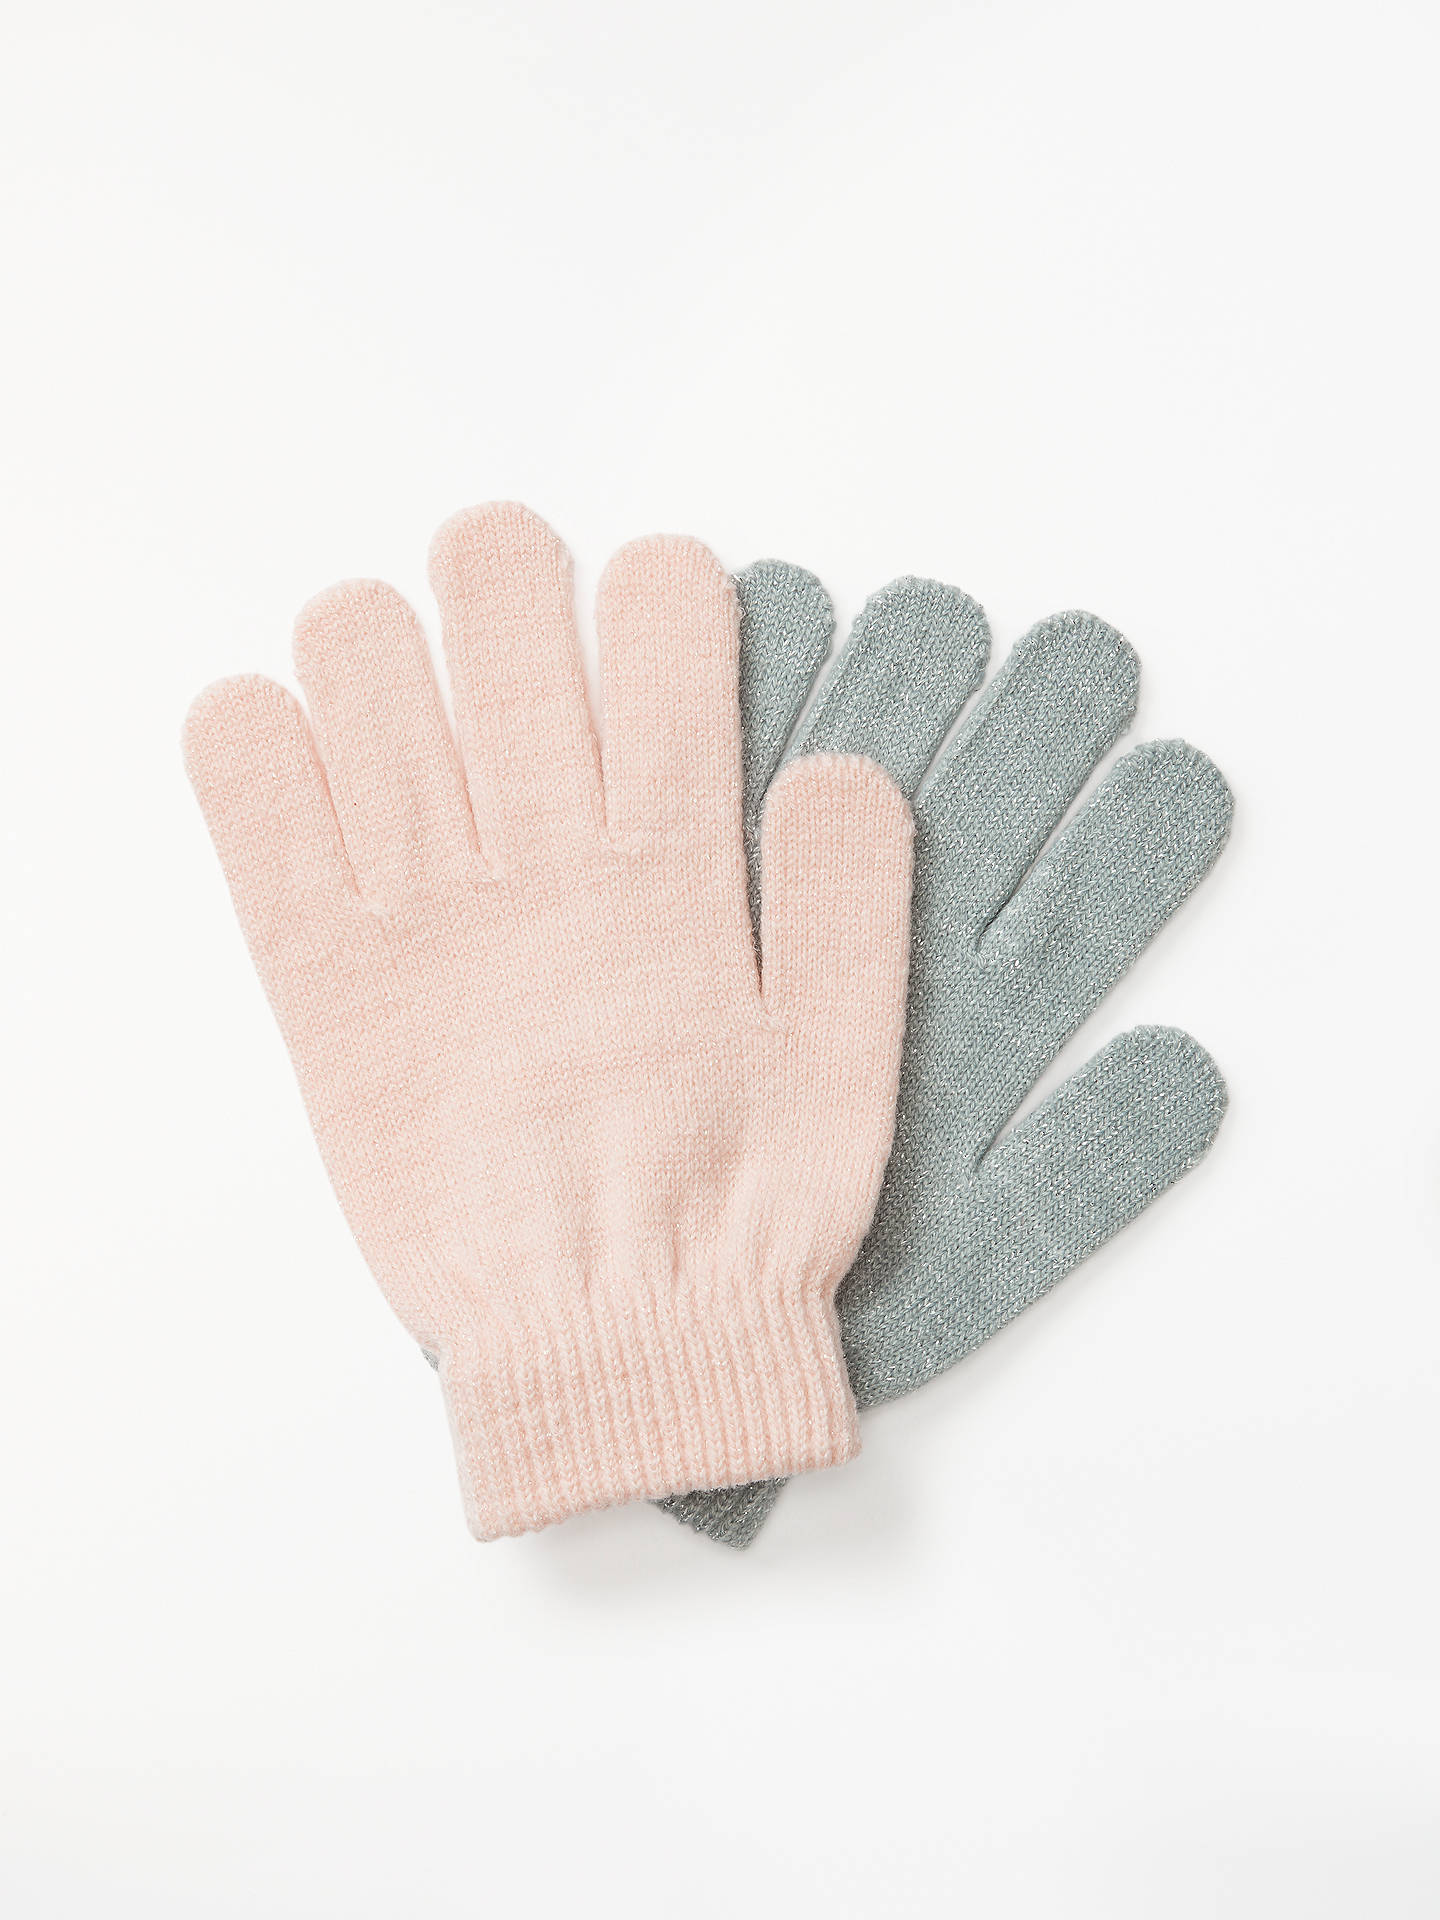 Buy John Lewis & Partners Children's Glitter Knitted Gloves, 2 Pack, Pink/Grey Online at johnlewis.com